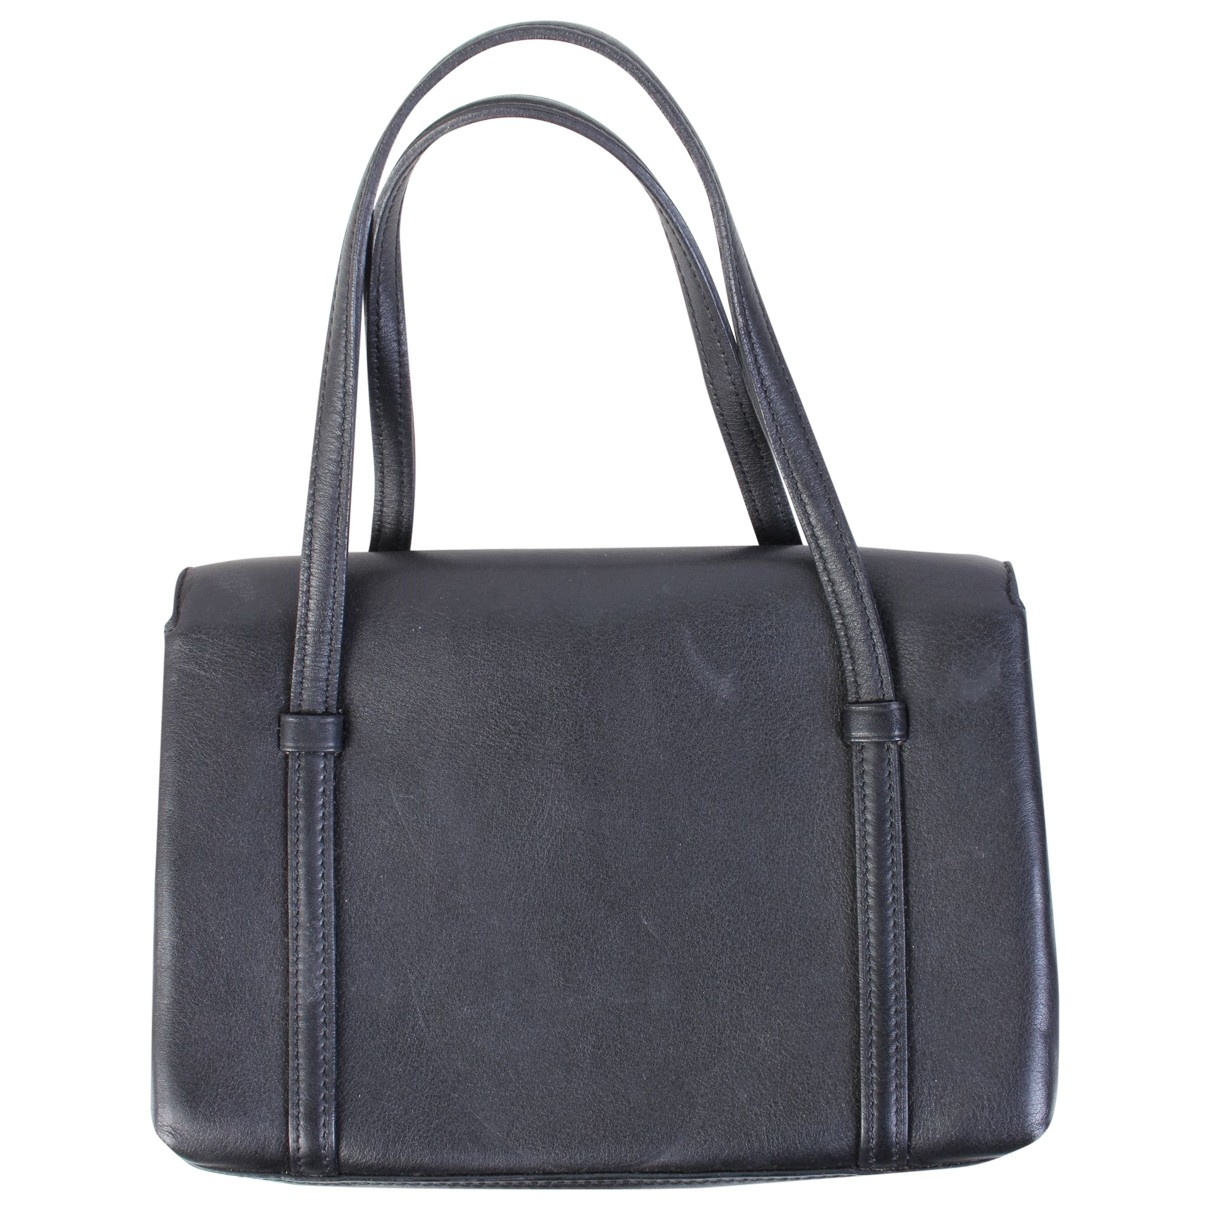 Cartier \N Black Leather handbag for Women \N